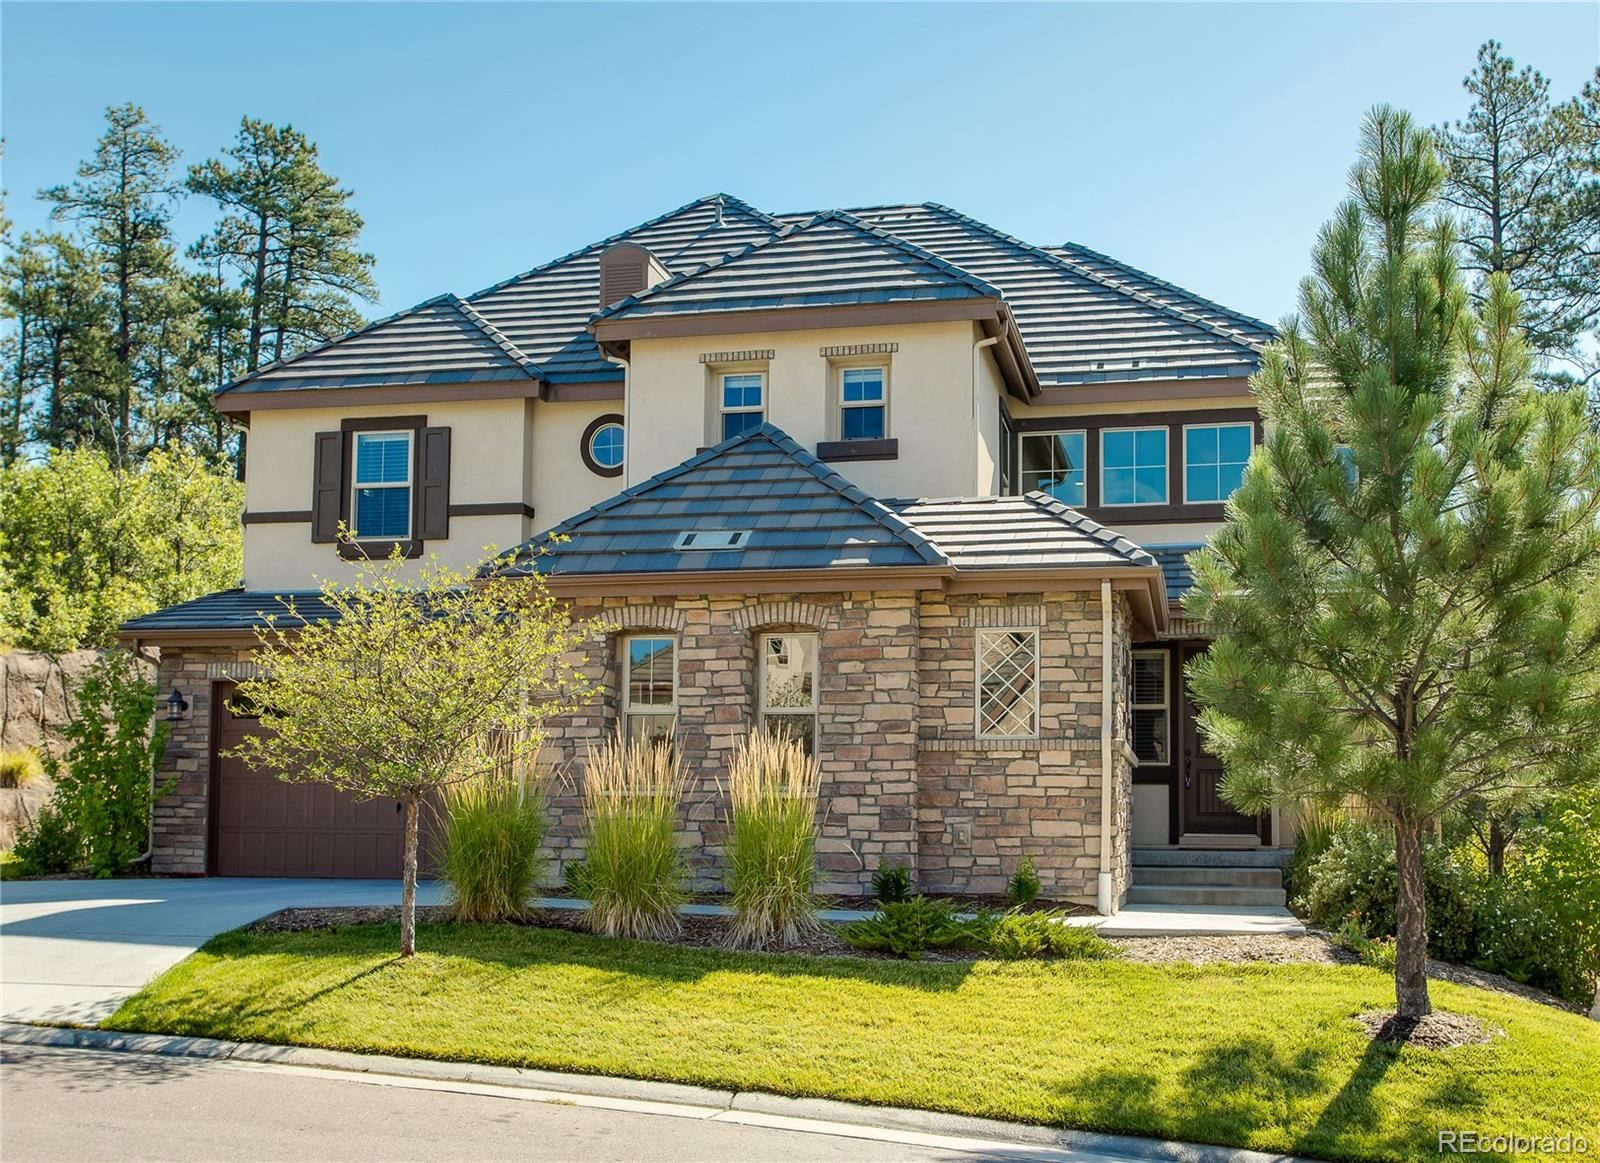 6879 Northstar Court, Castle Rock, CO 80108 - #: 6323311